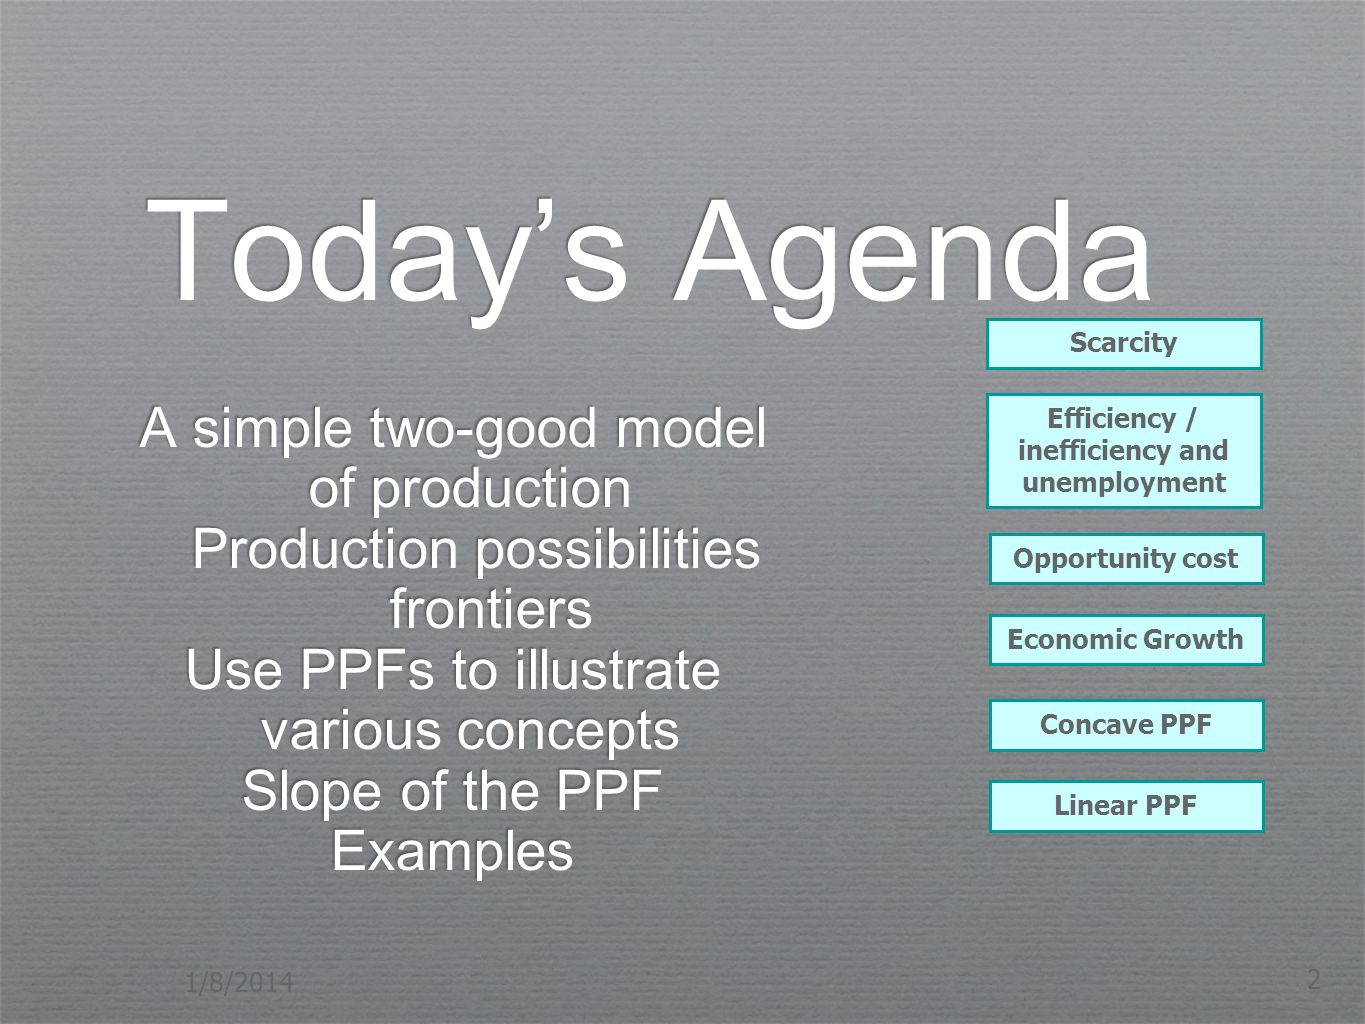 1/8/2014 2 Todays Agenda A simple two-good model of production Production possibilities frontiers Use PPFs to illustrate various concepts Slope of the